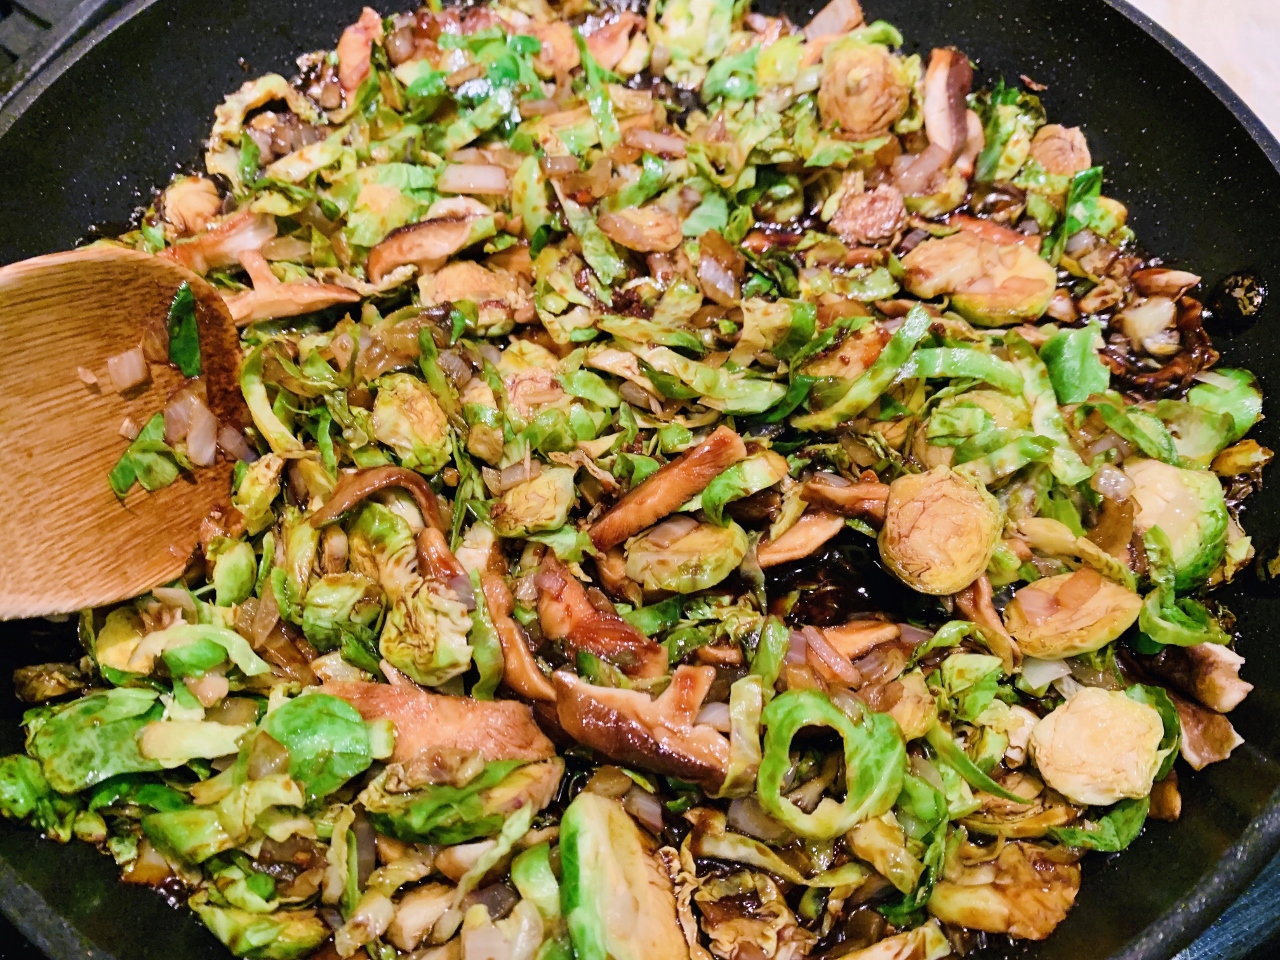 Shaved Brussels Sprouts & Shiitakes with Asian Flavors – Recipe! Image 2